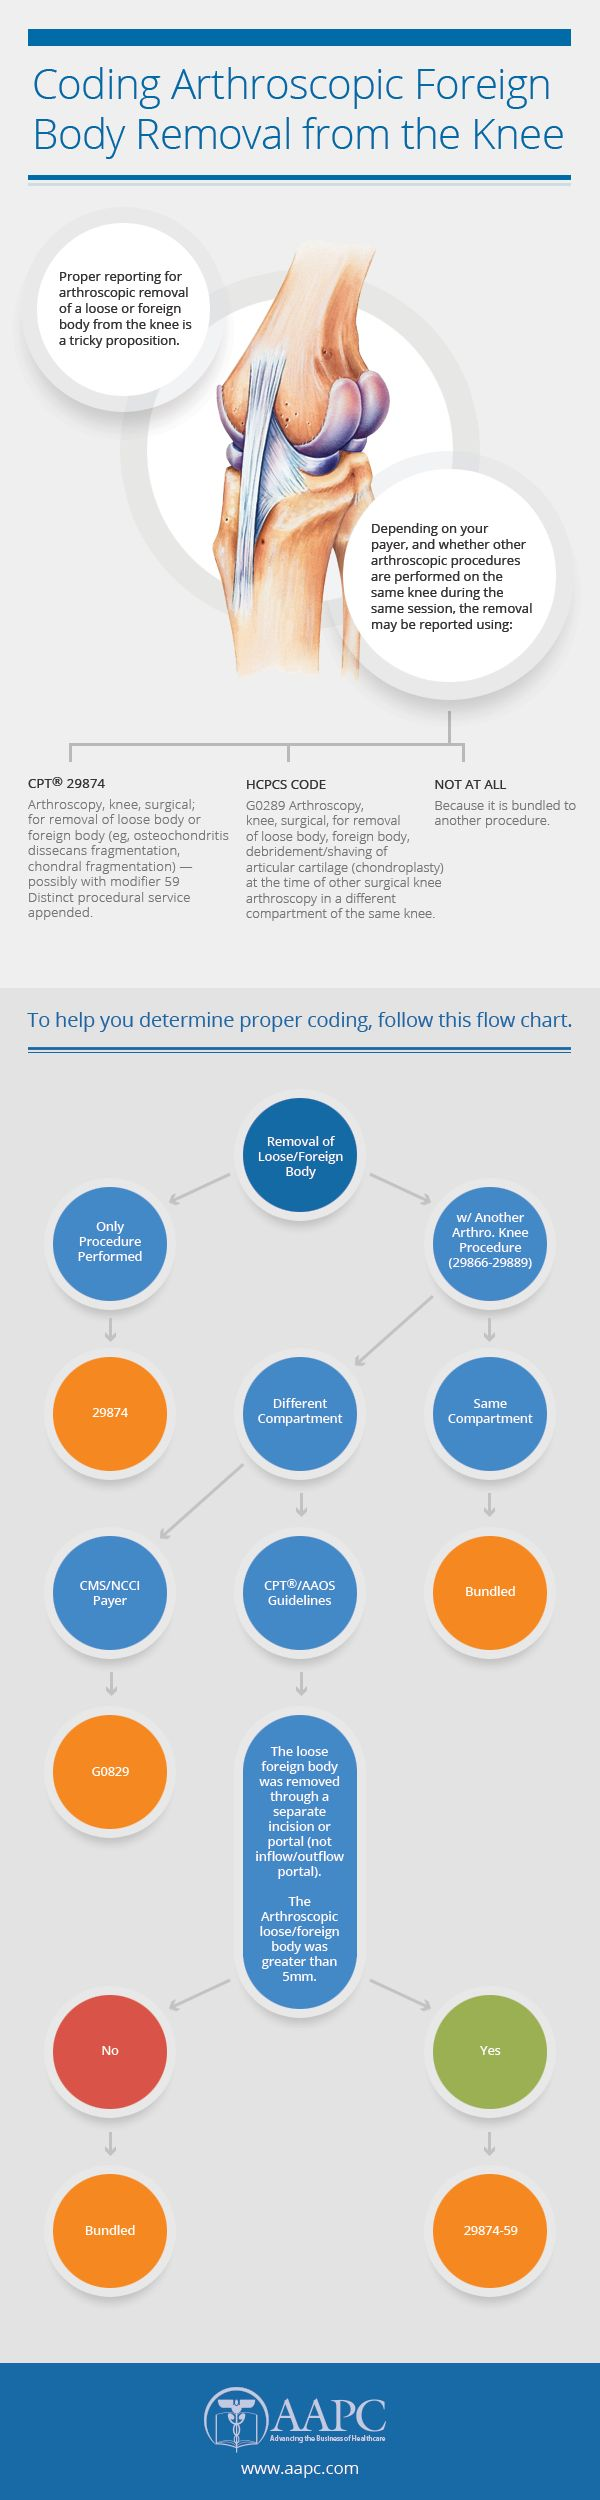 8 best aapc healthcare infographics images on pinterest medicalcoding healthcare medical coding trainingcpt codesicd fandeluxe Images